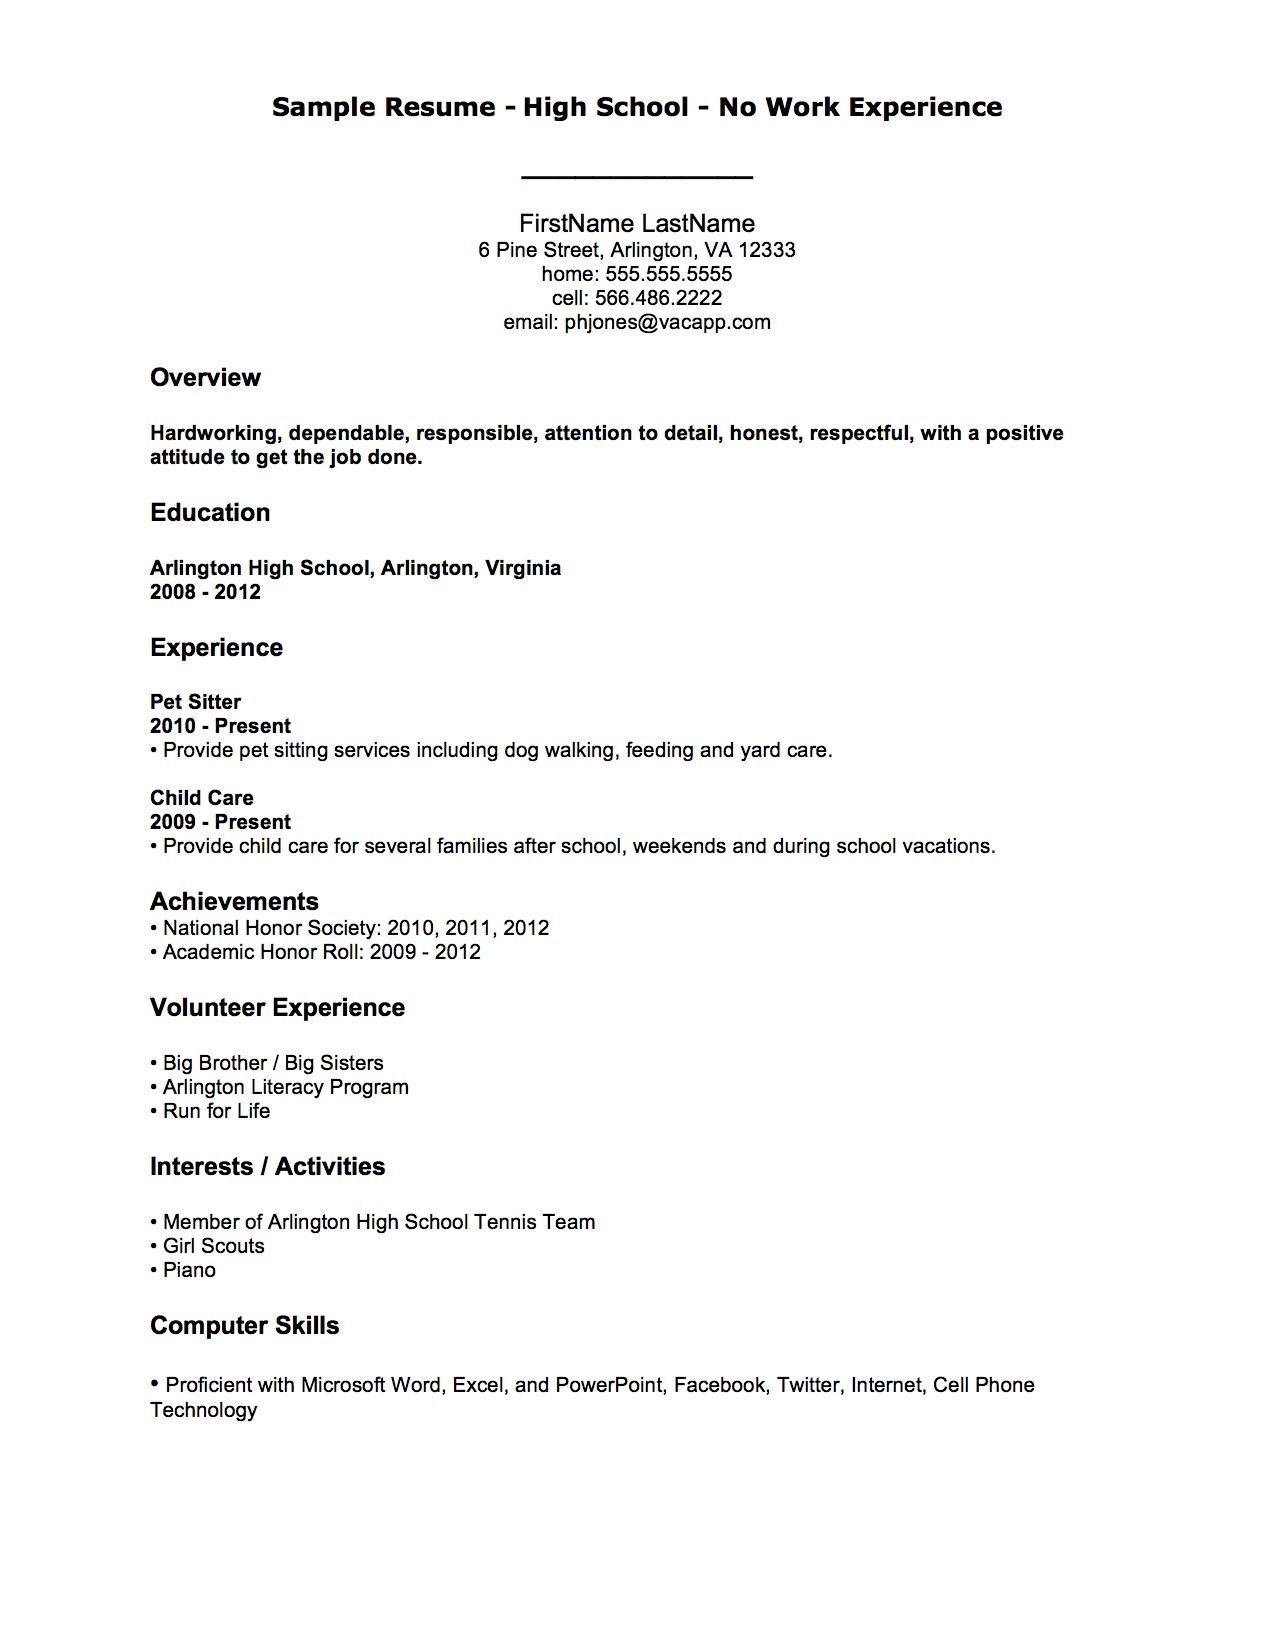 Amazing No Experience Resumes | Help! I Need A Resume, But I Have No Experience